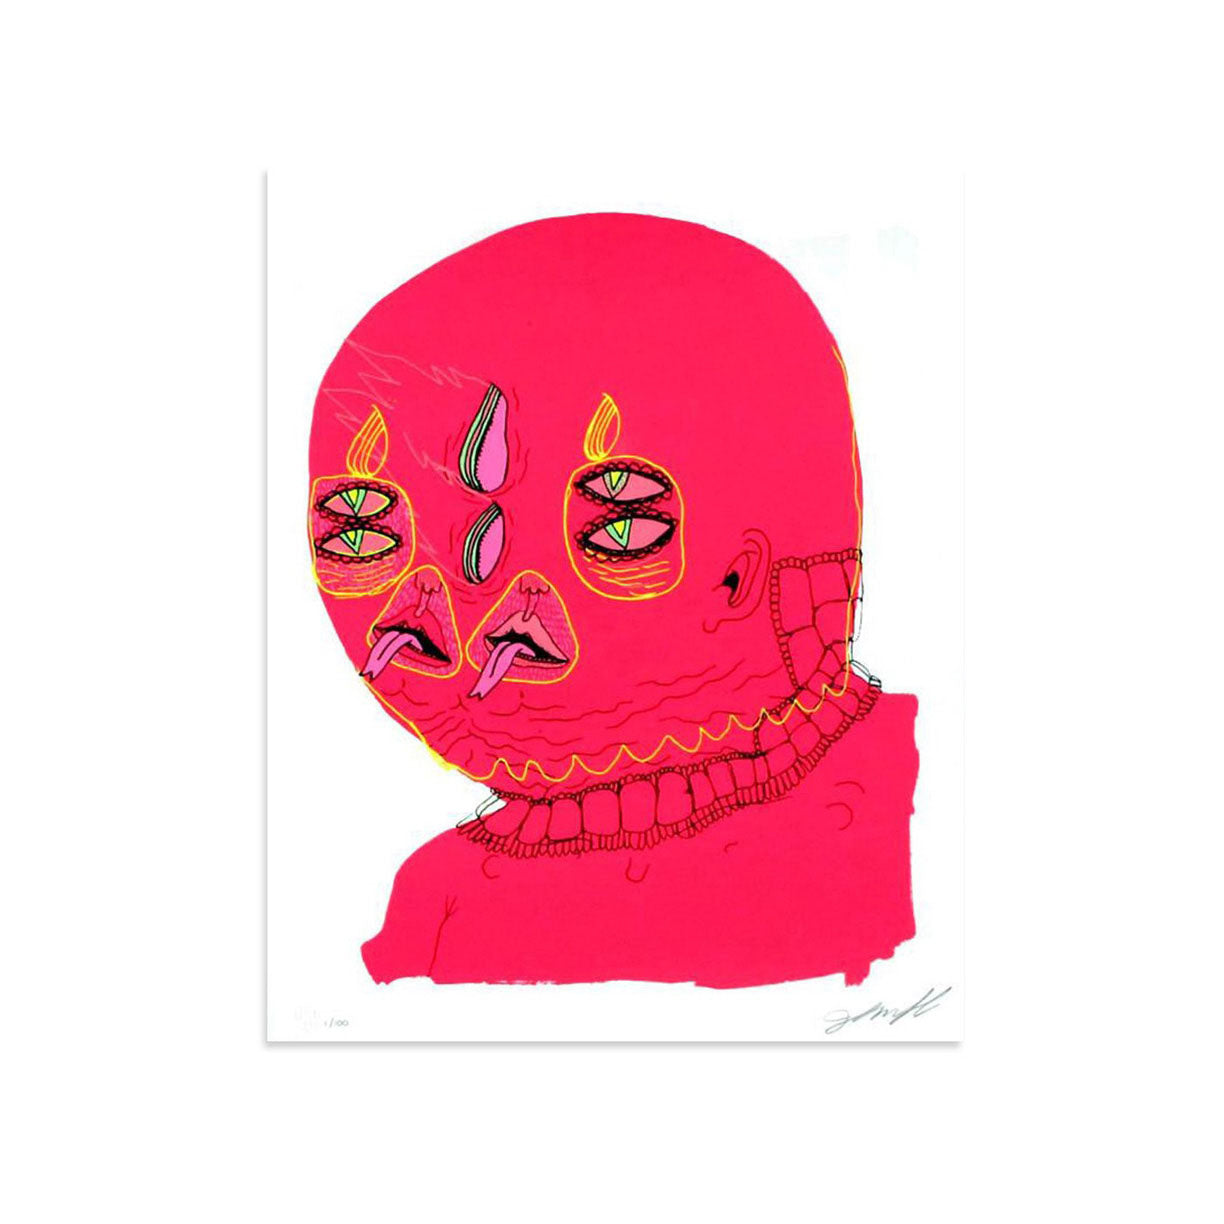 Untitled (Pink Head)